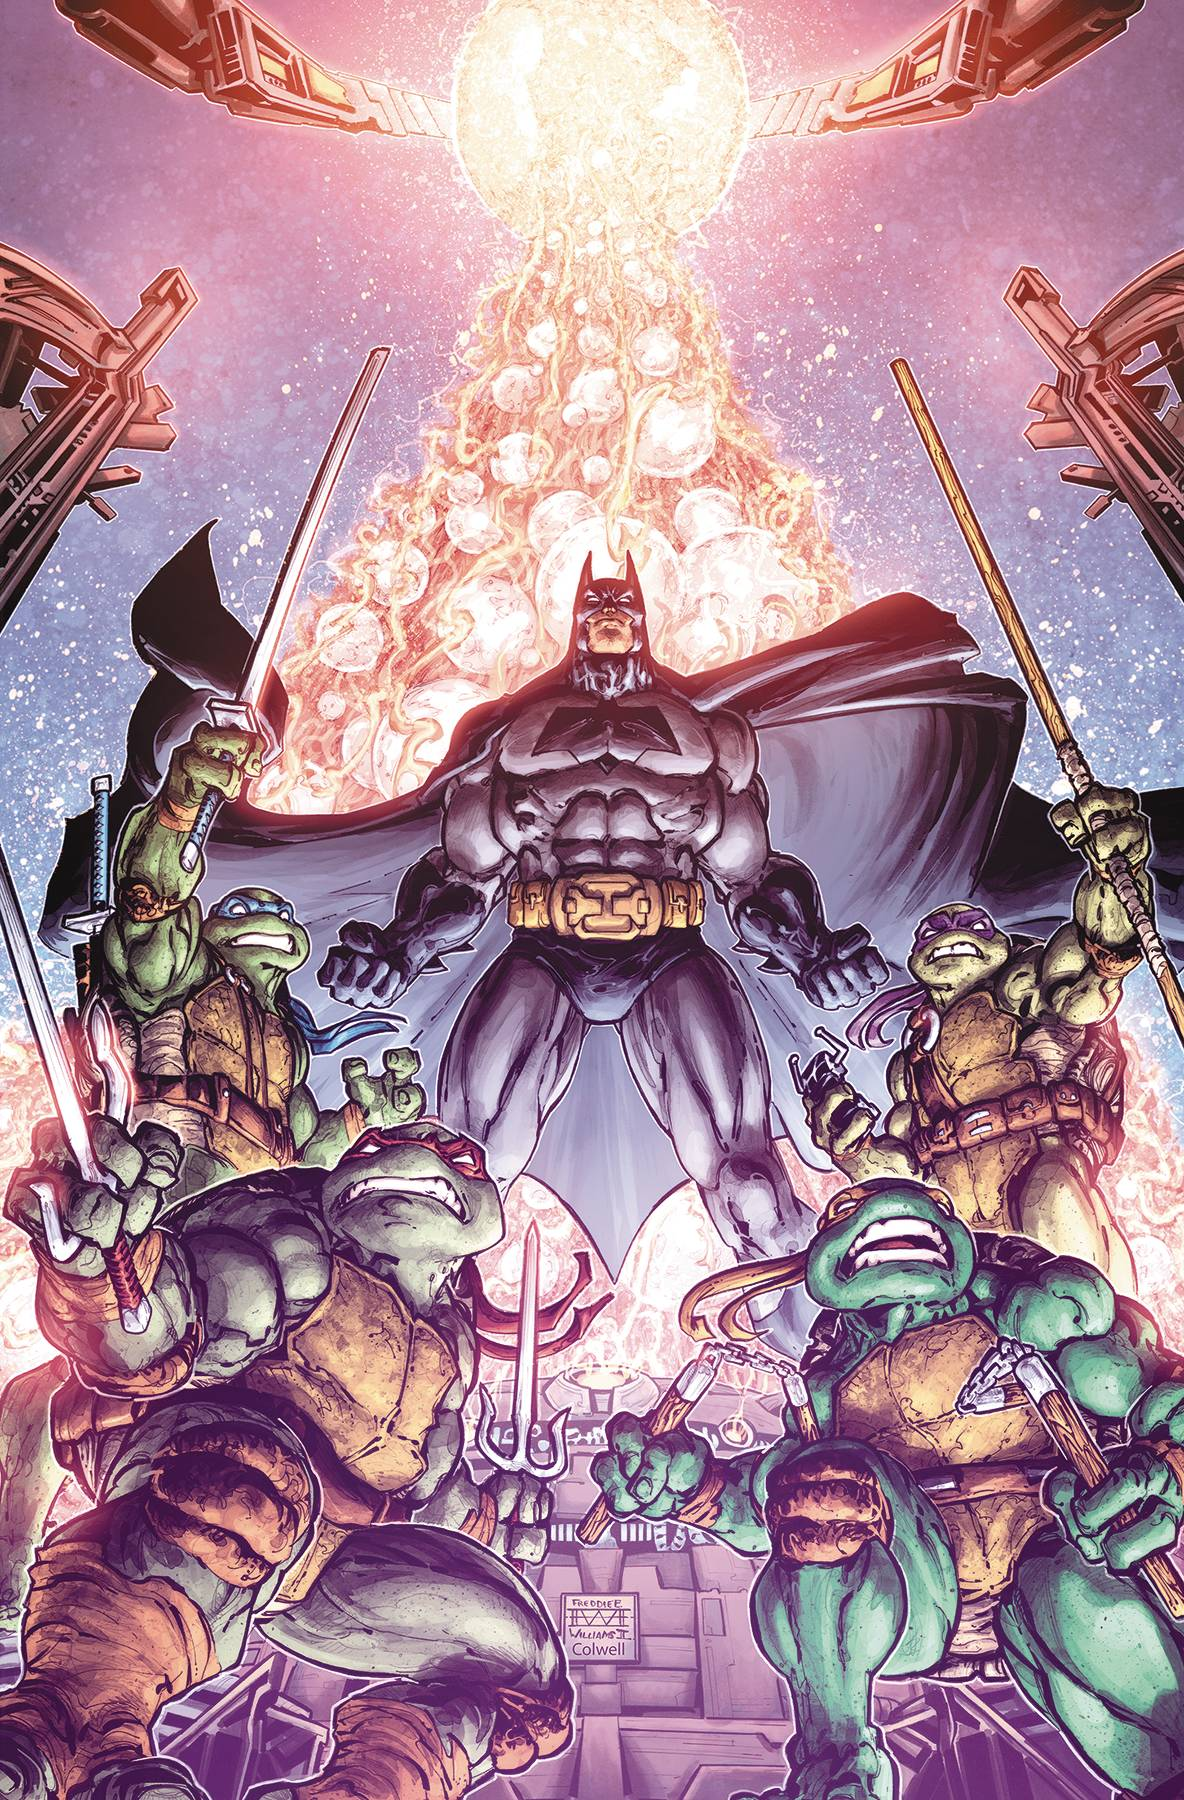 BATMAN TEENAGE MUTANT NINJA TURTLES III 6 of 6.jpg